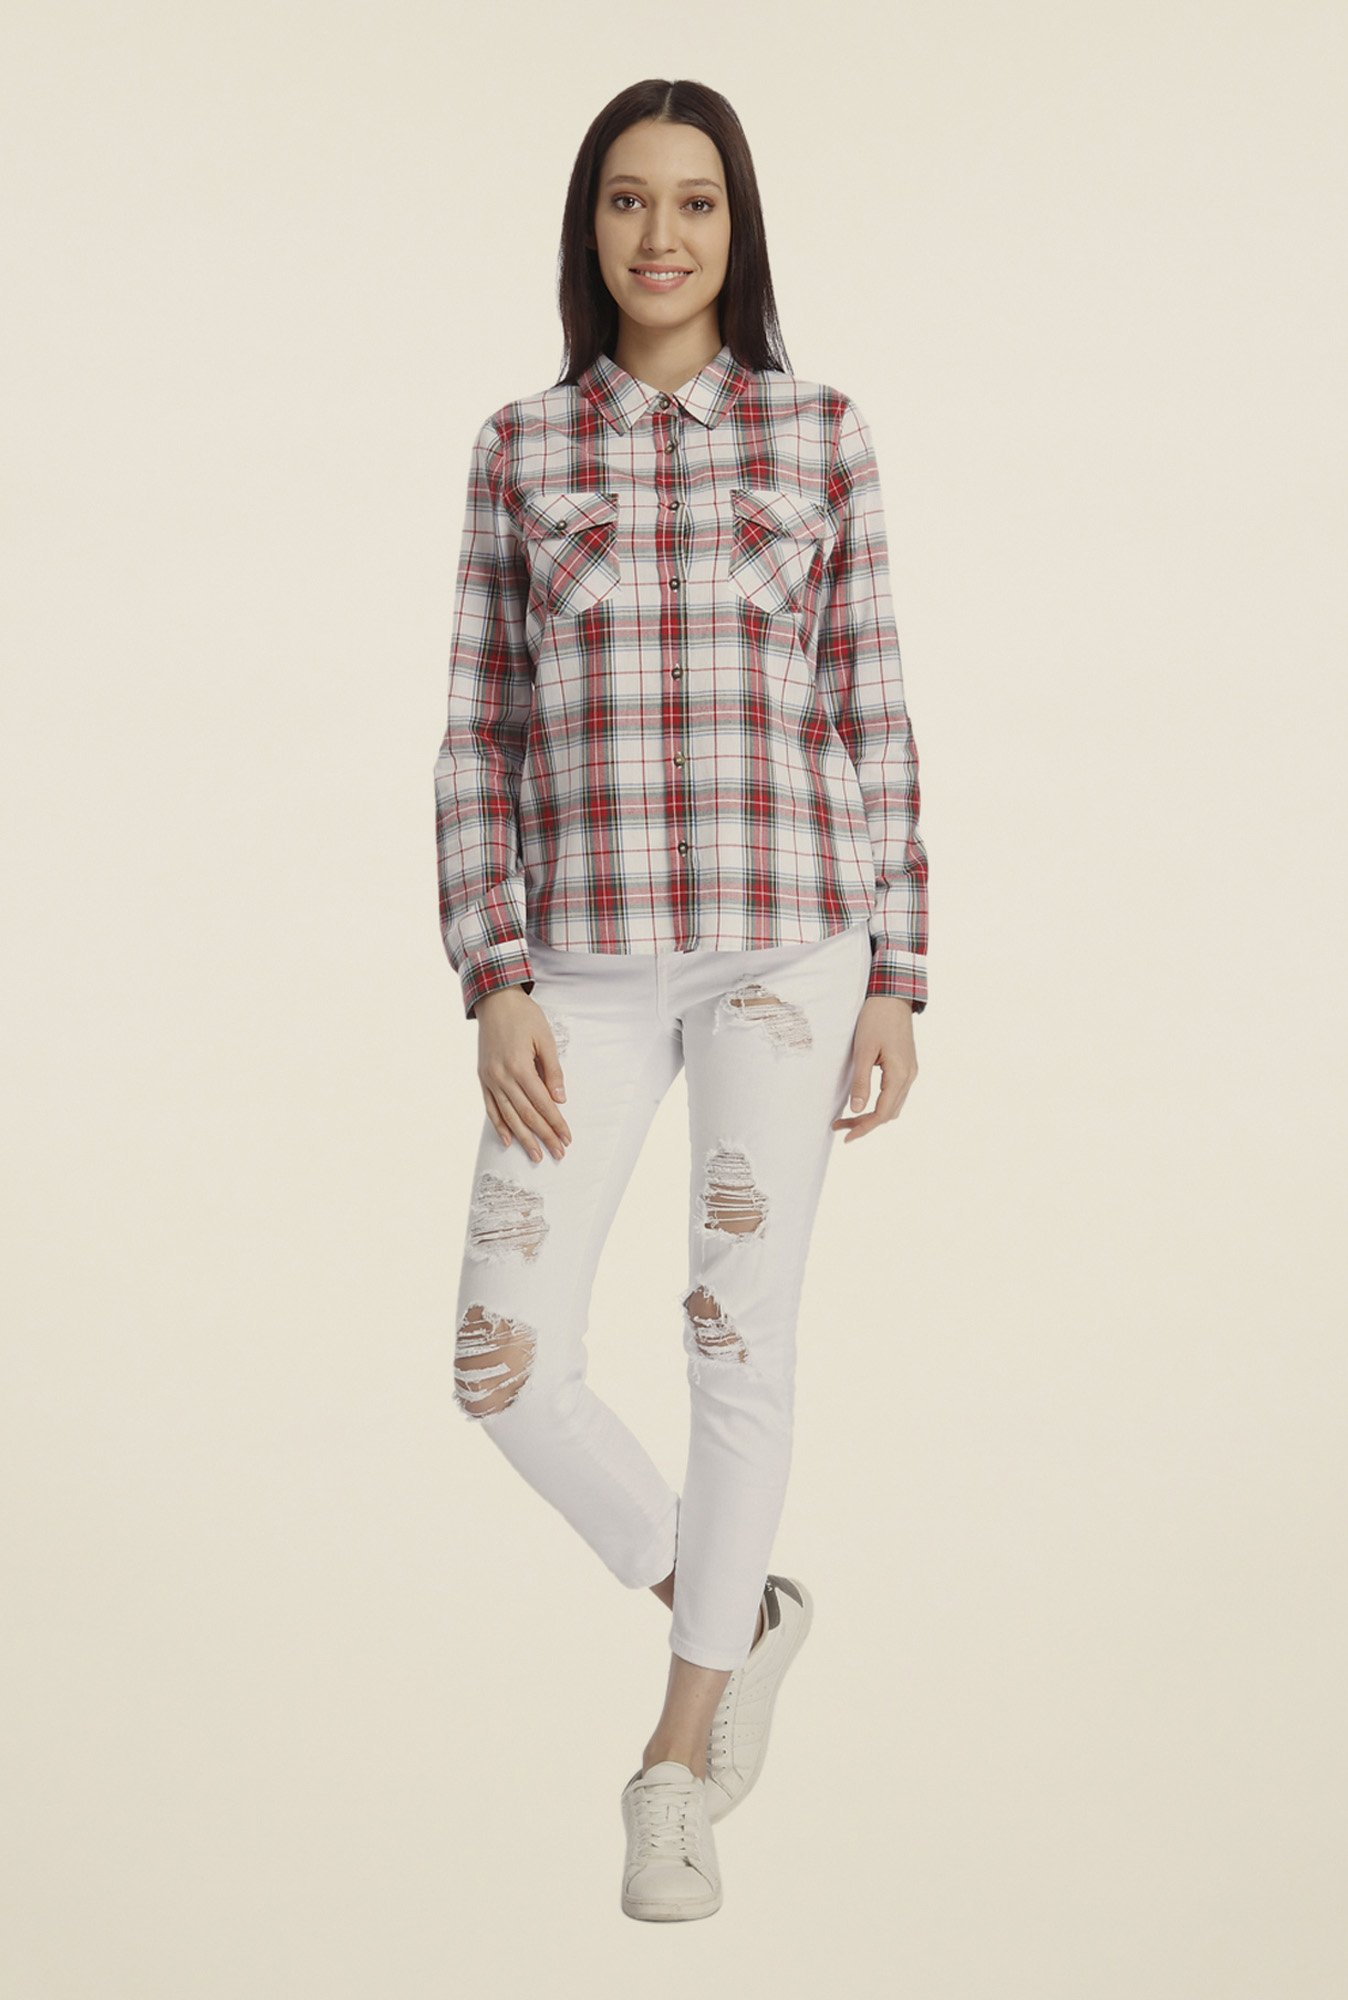 Vero Moda Red & White Checked Shirt